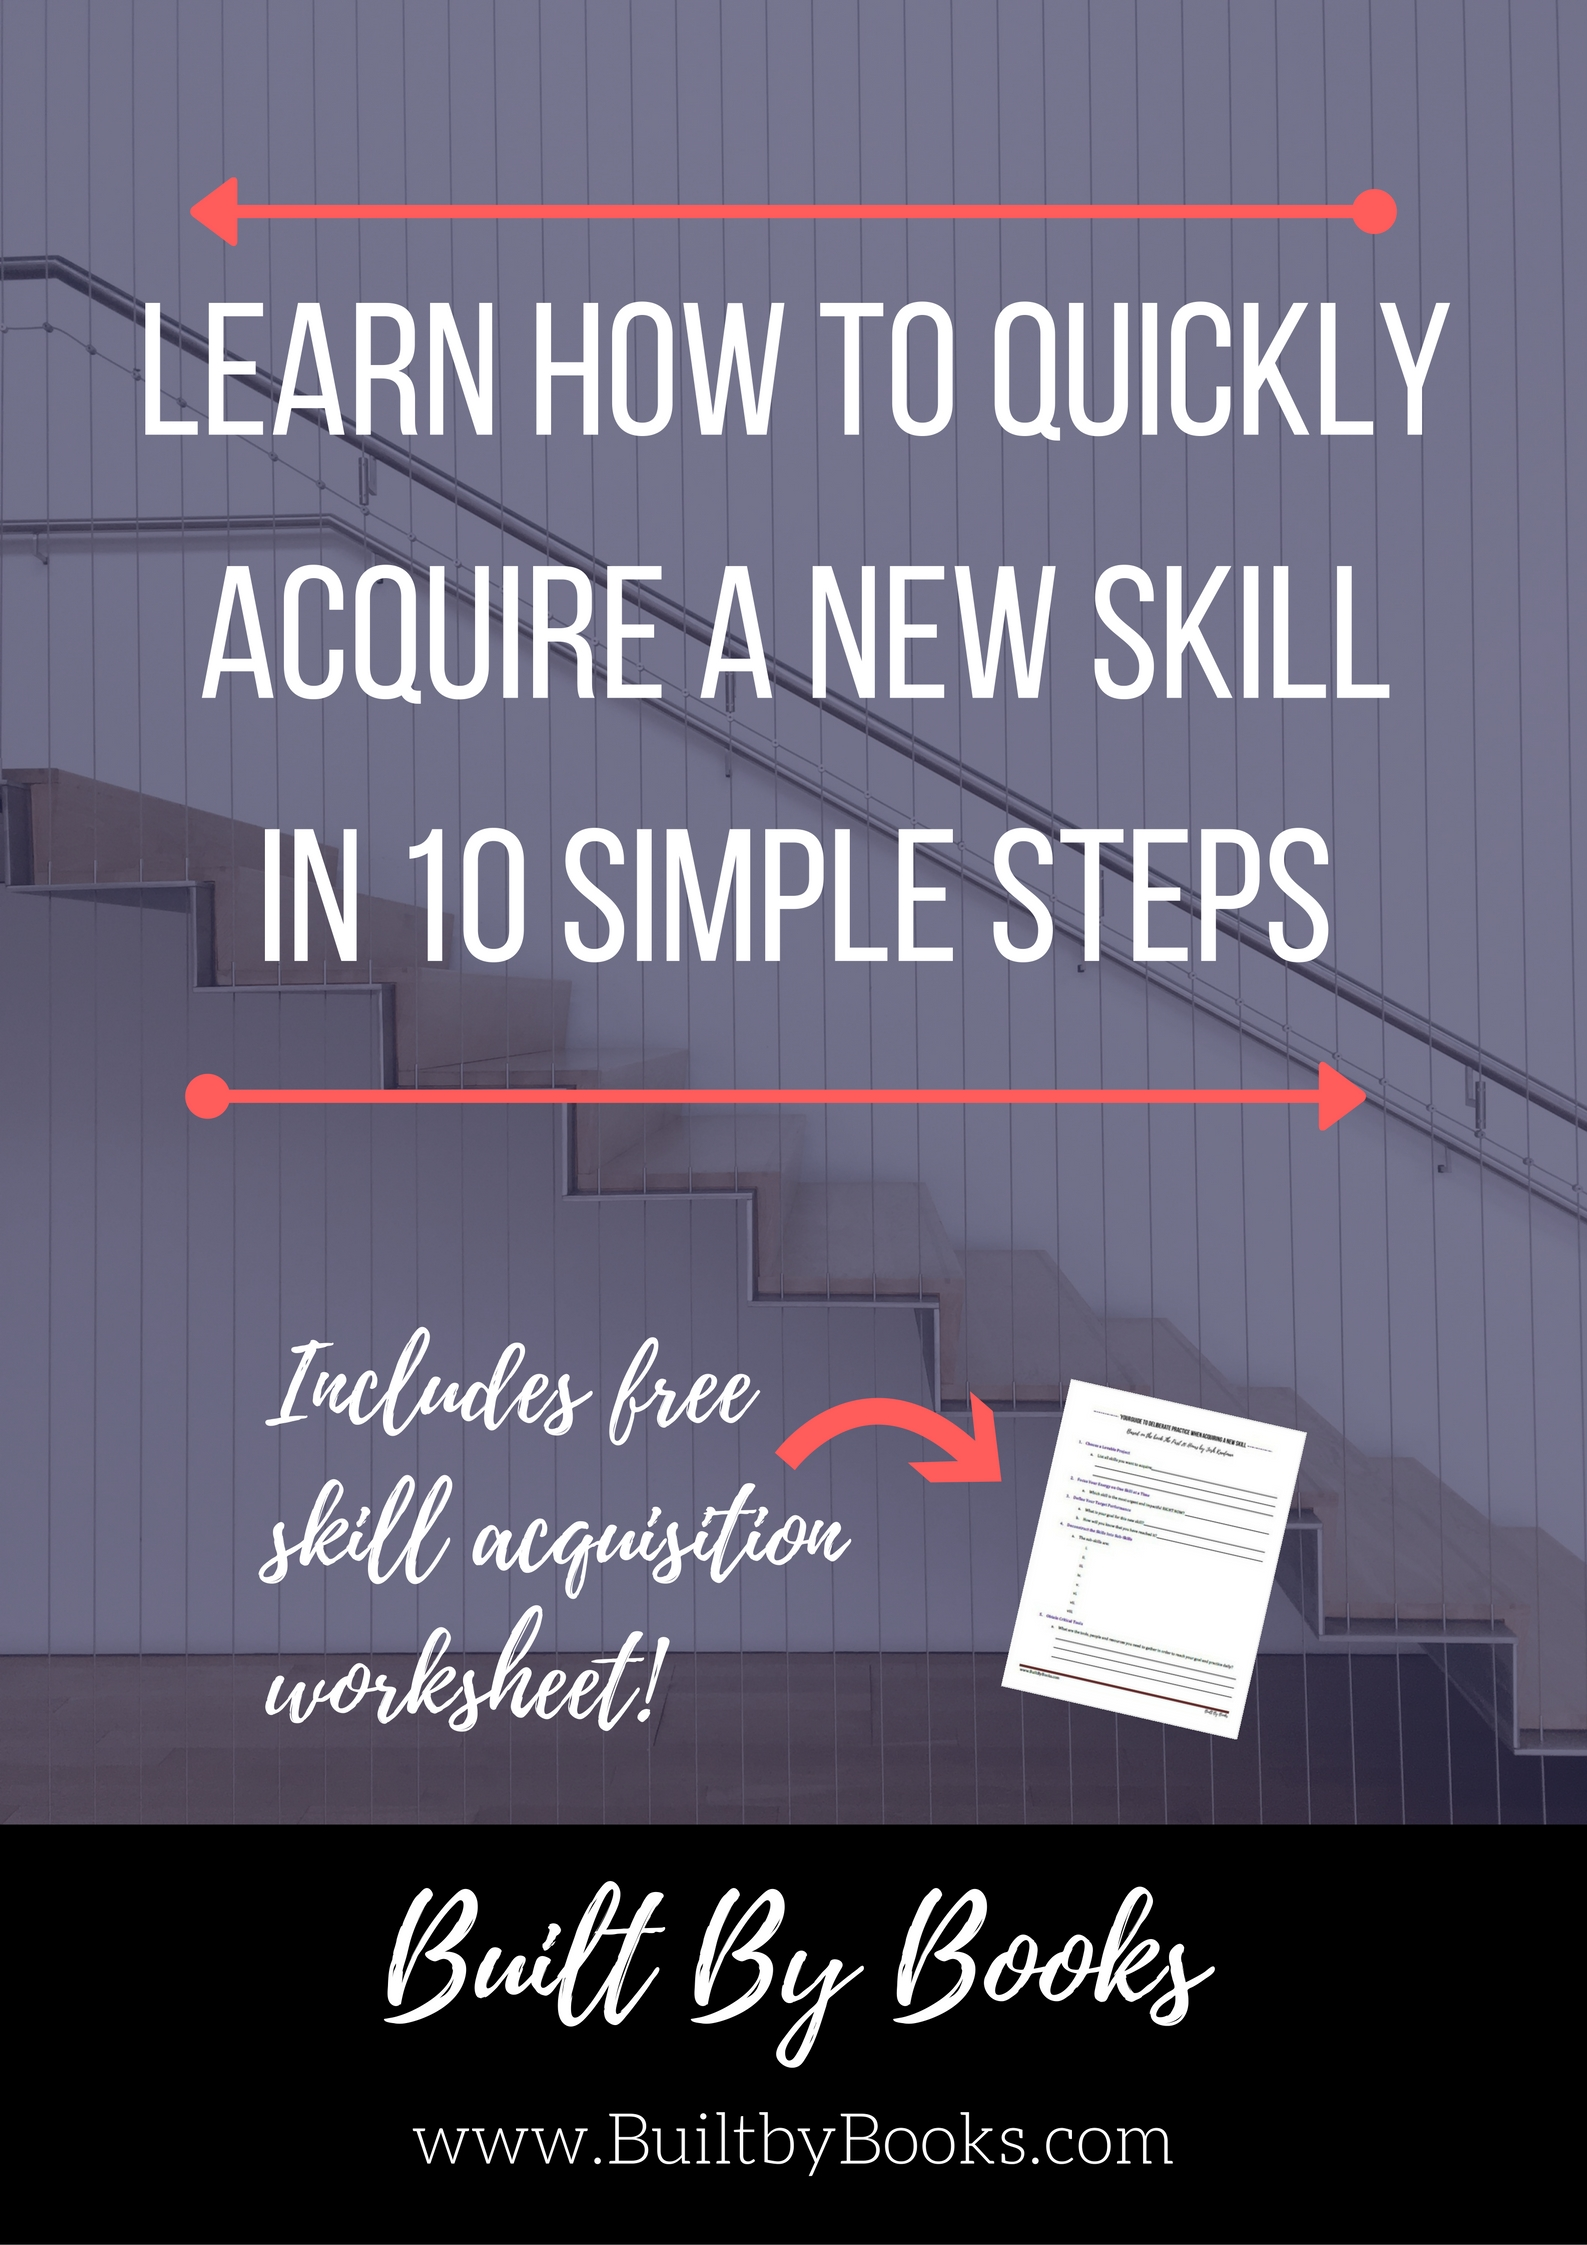 Built by Books - Learn New Skills Quickly!